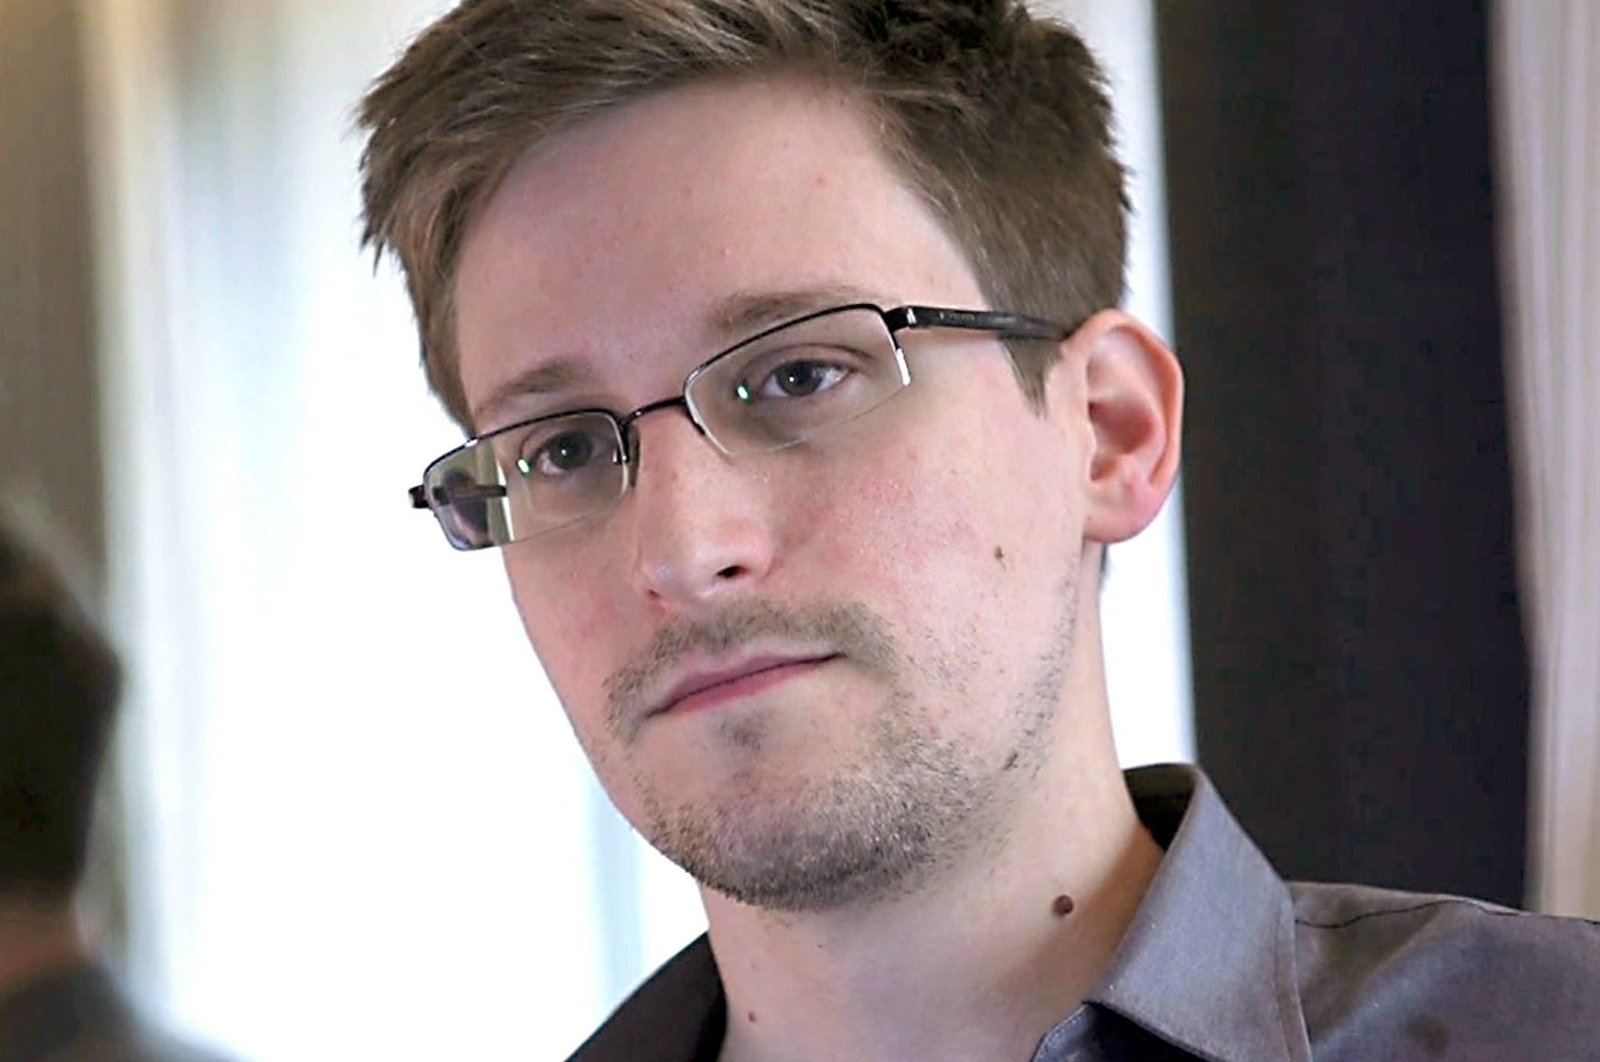 Former U.S. spy agency contractor Edward Snowden is interviewed by The Guardian in his hotel room in Hong Kong, June 6, 2013. (Glenn Greenwald/Laura Poitras/Courtesy of The Guardian/Handout via Reuters)